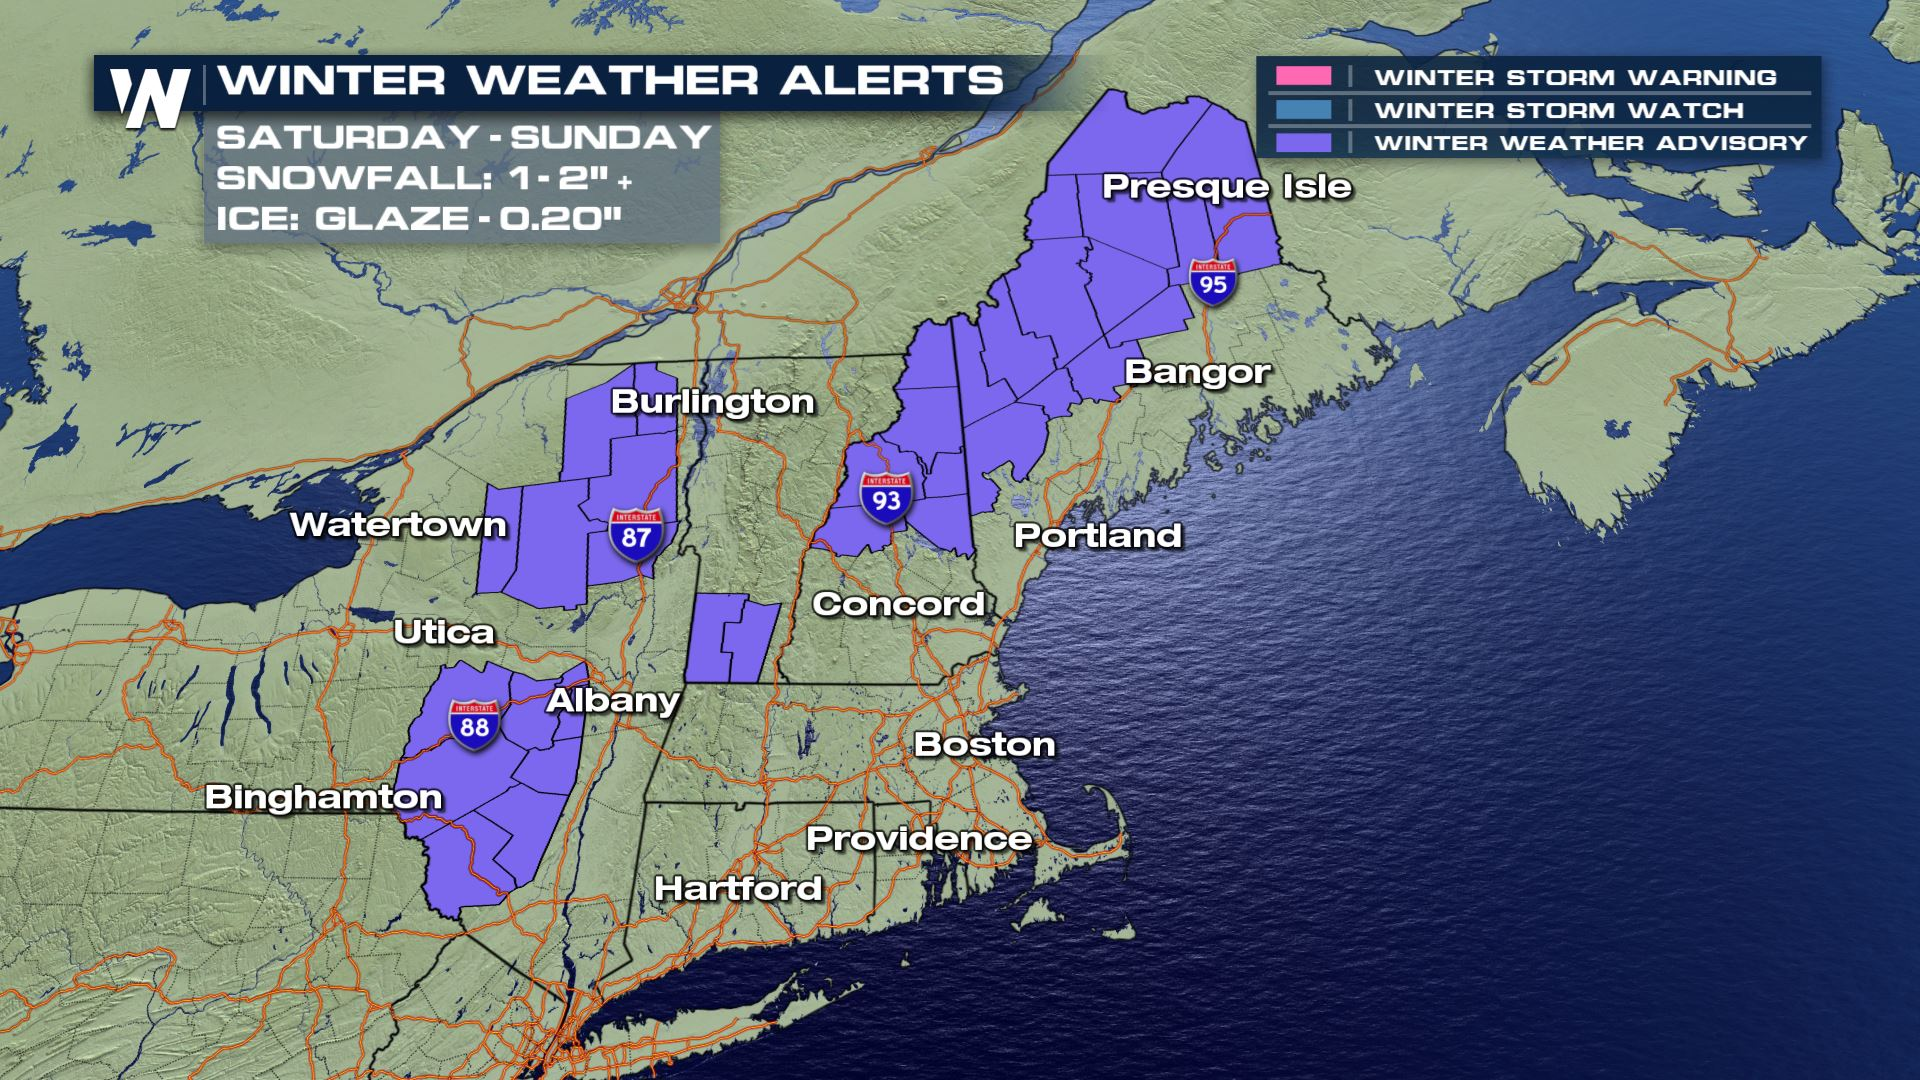 The Latest Alerts For The Nor'easter